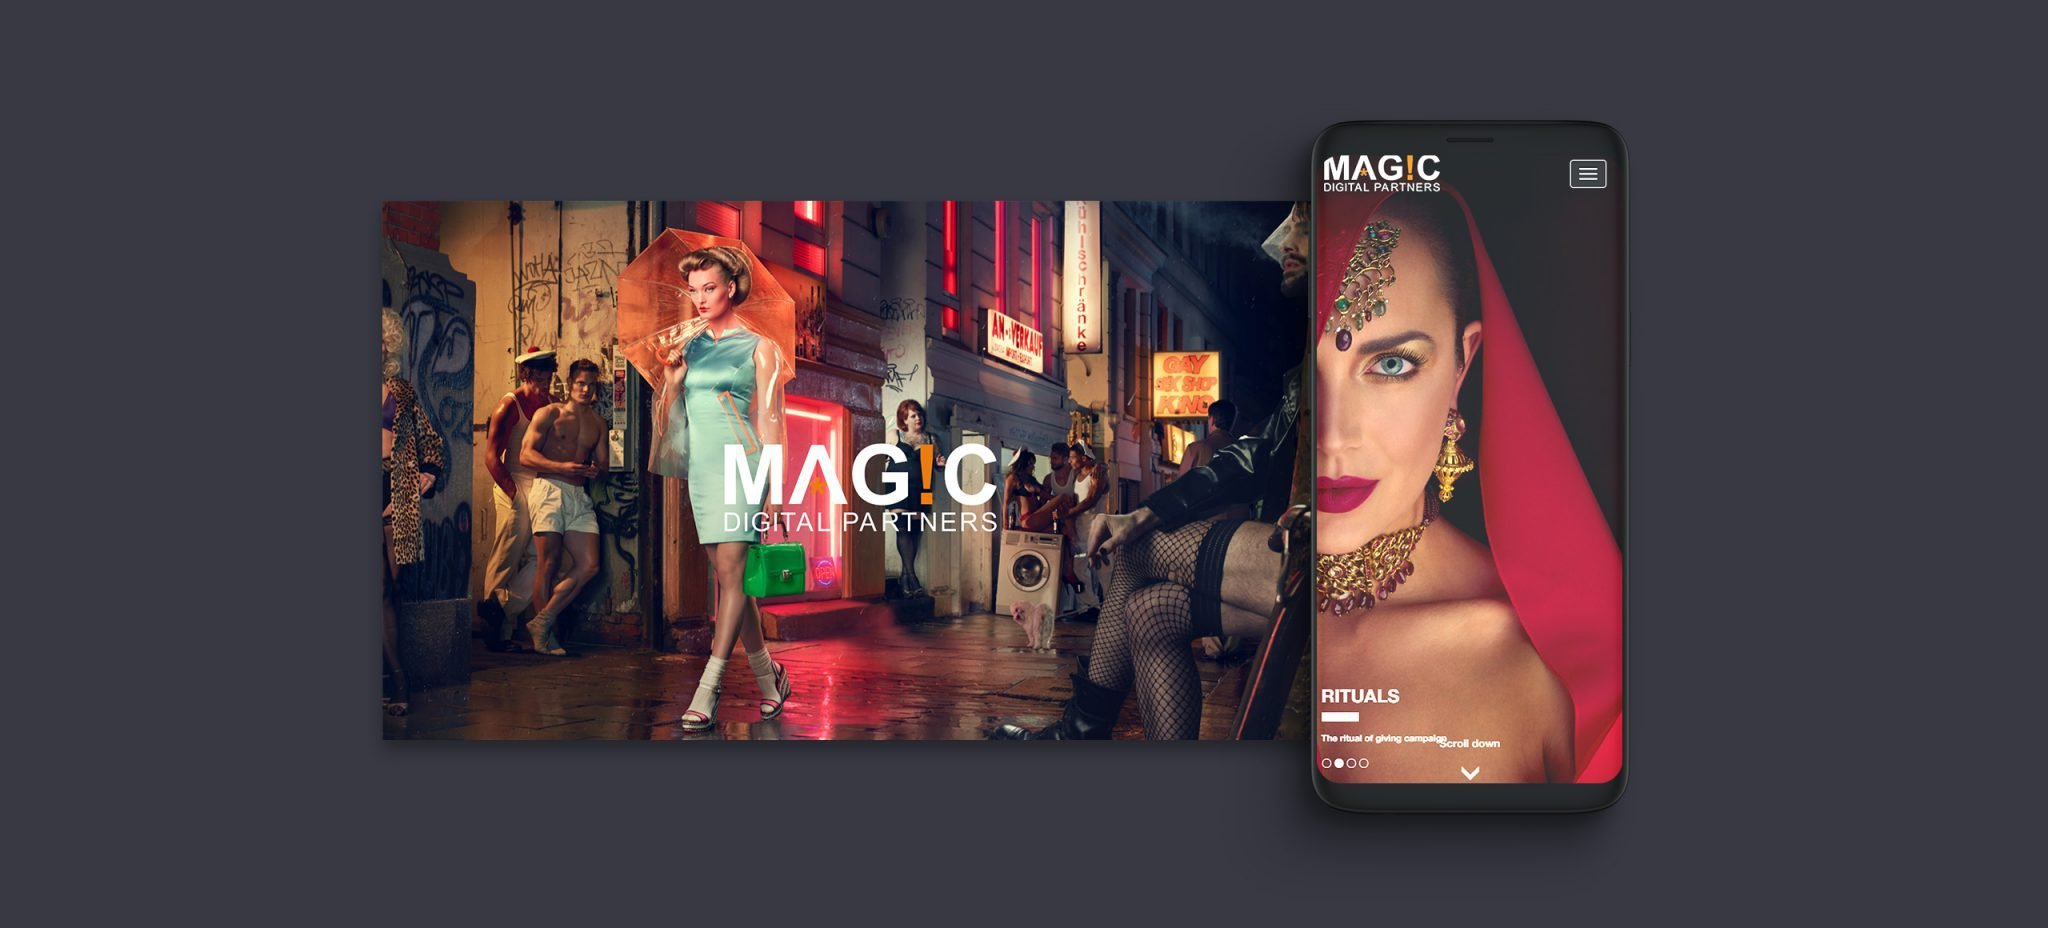 innovative-digital-amsterdam-webdesign-magic_website_banner_phone_01